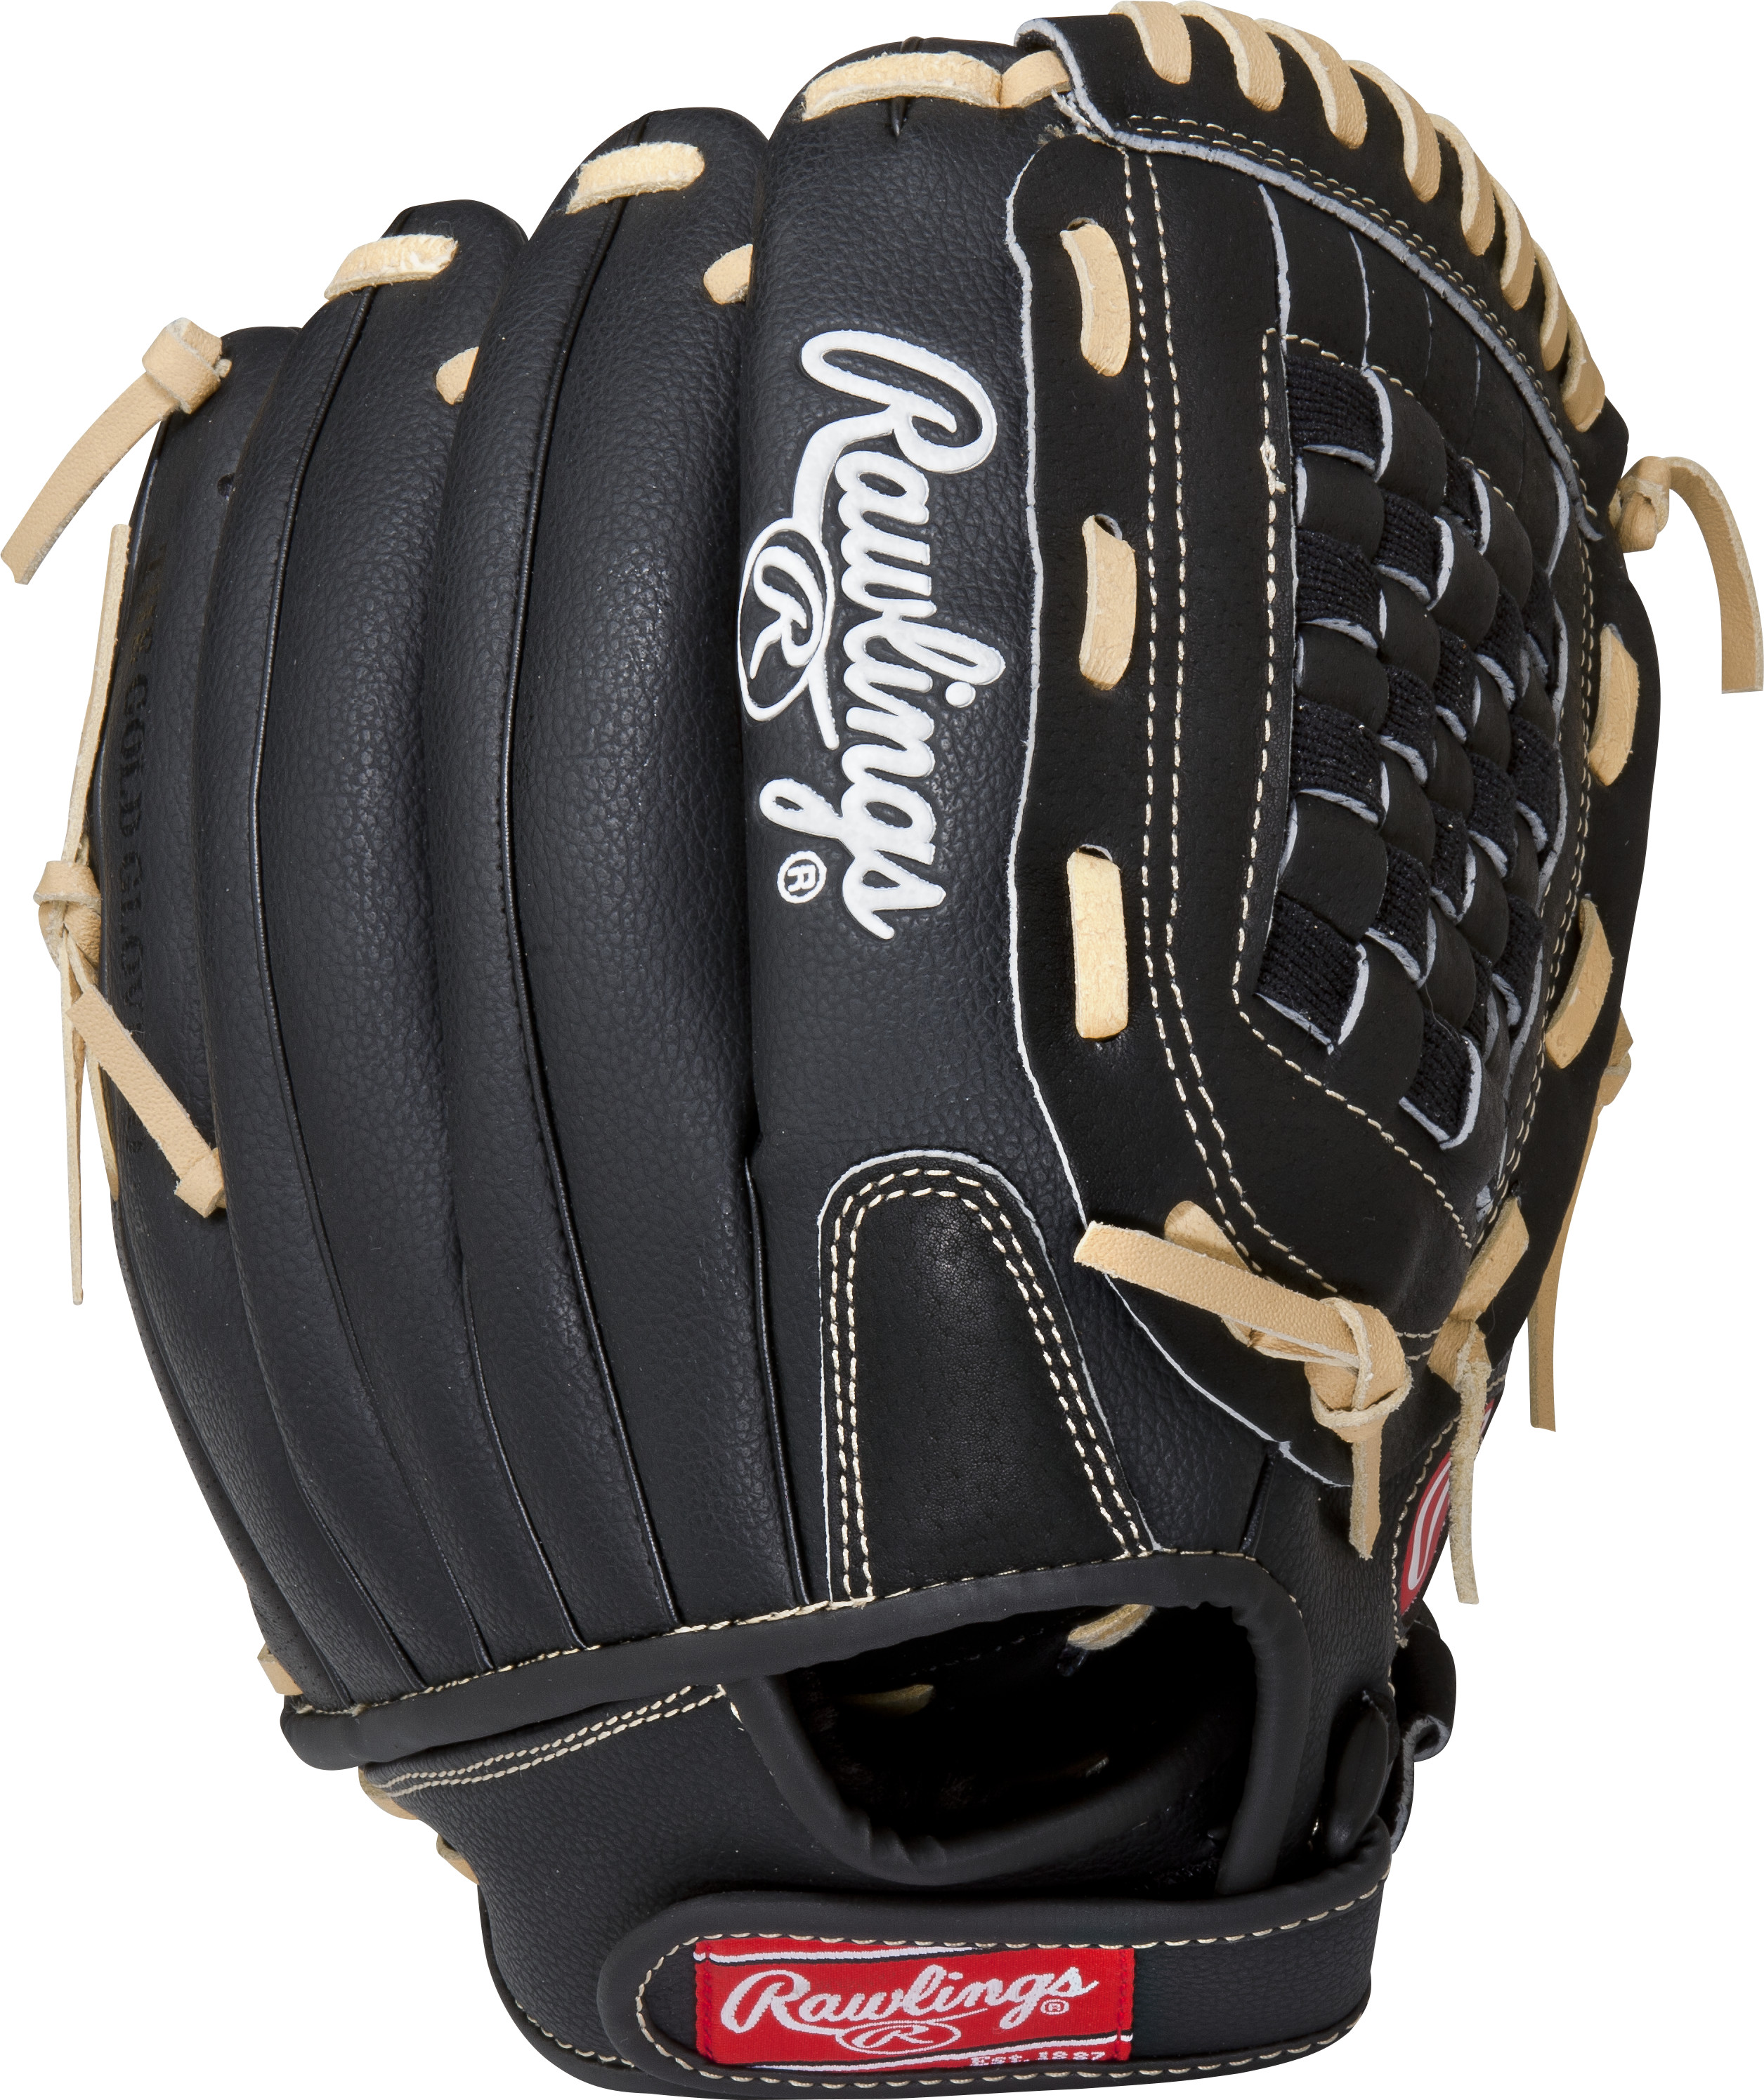 http://www.bestbatdeals.com/images/gloves/rawlings/RSS120C_back.jpg